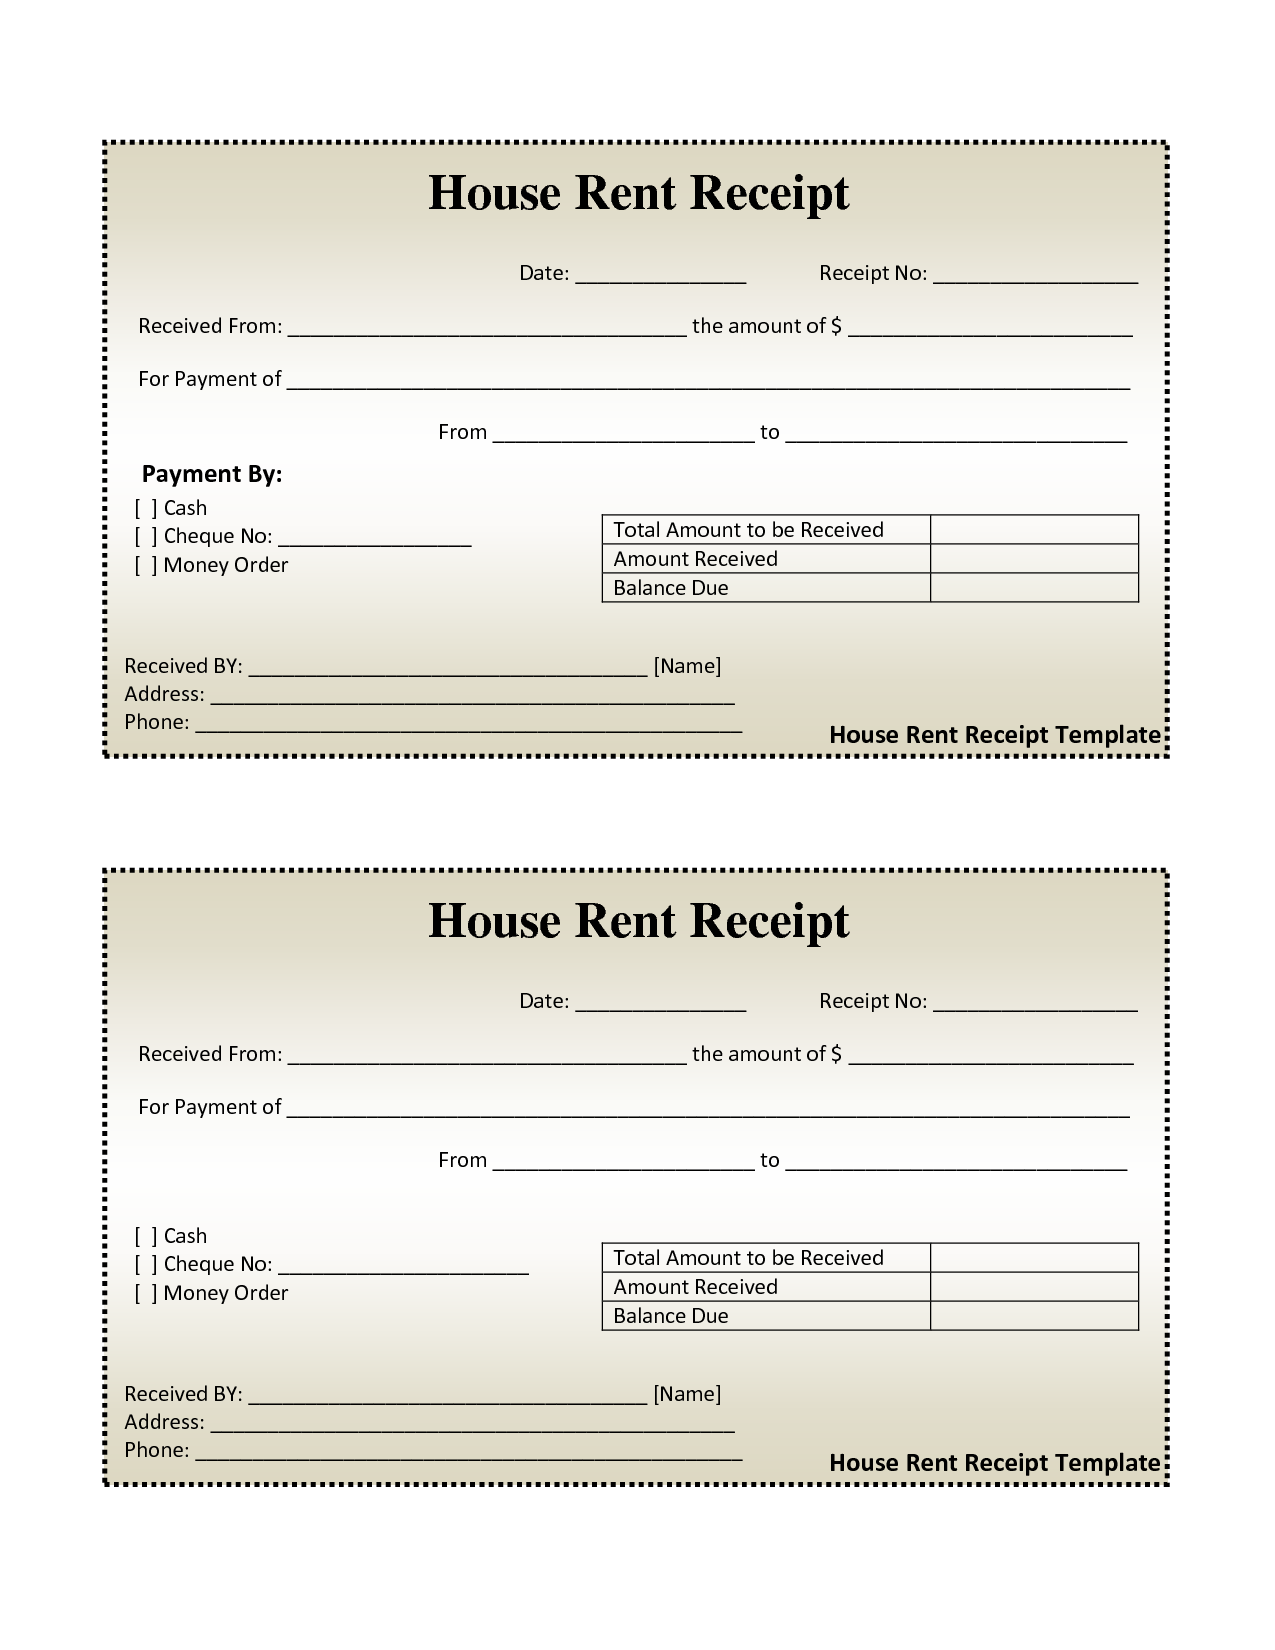 free house rental invoice – Rental Receipts Templates